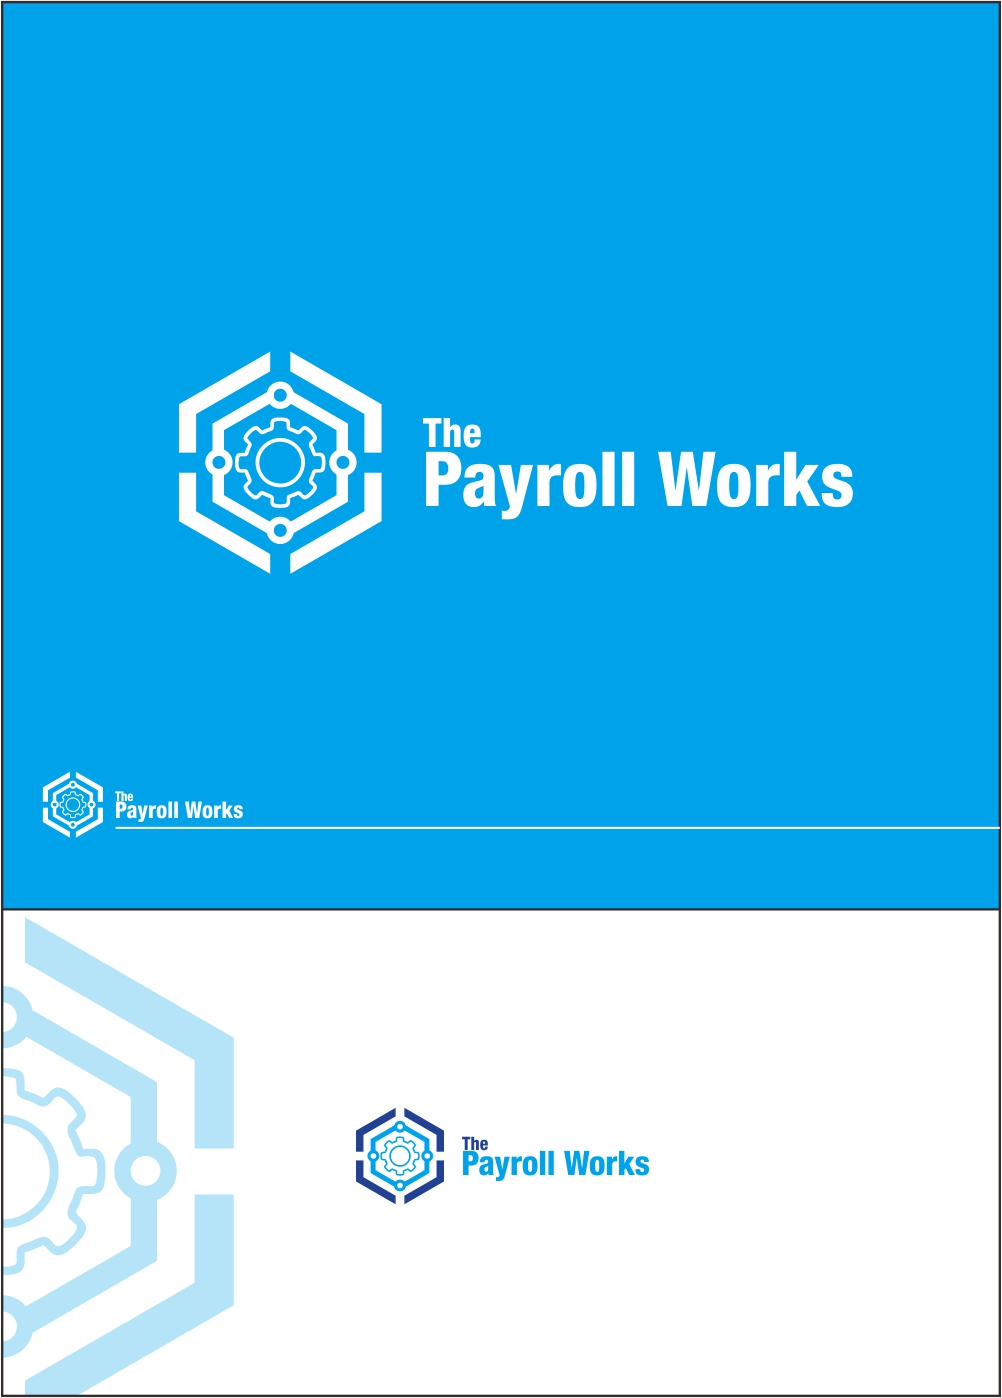 Logo Design by ian69 - Entry No. 27 in the Logo Design Contest Captivating Logo Design for The Payroll Works.